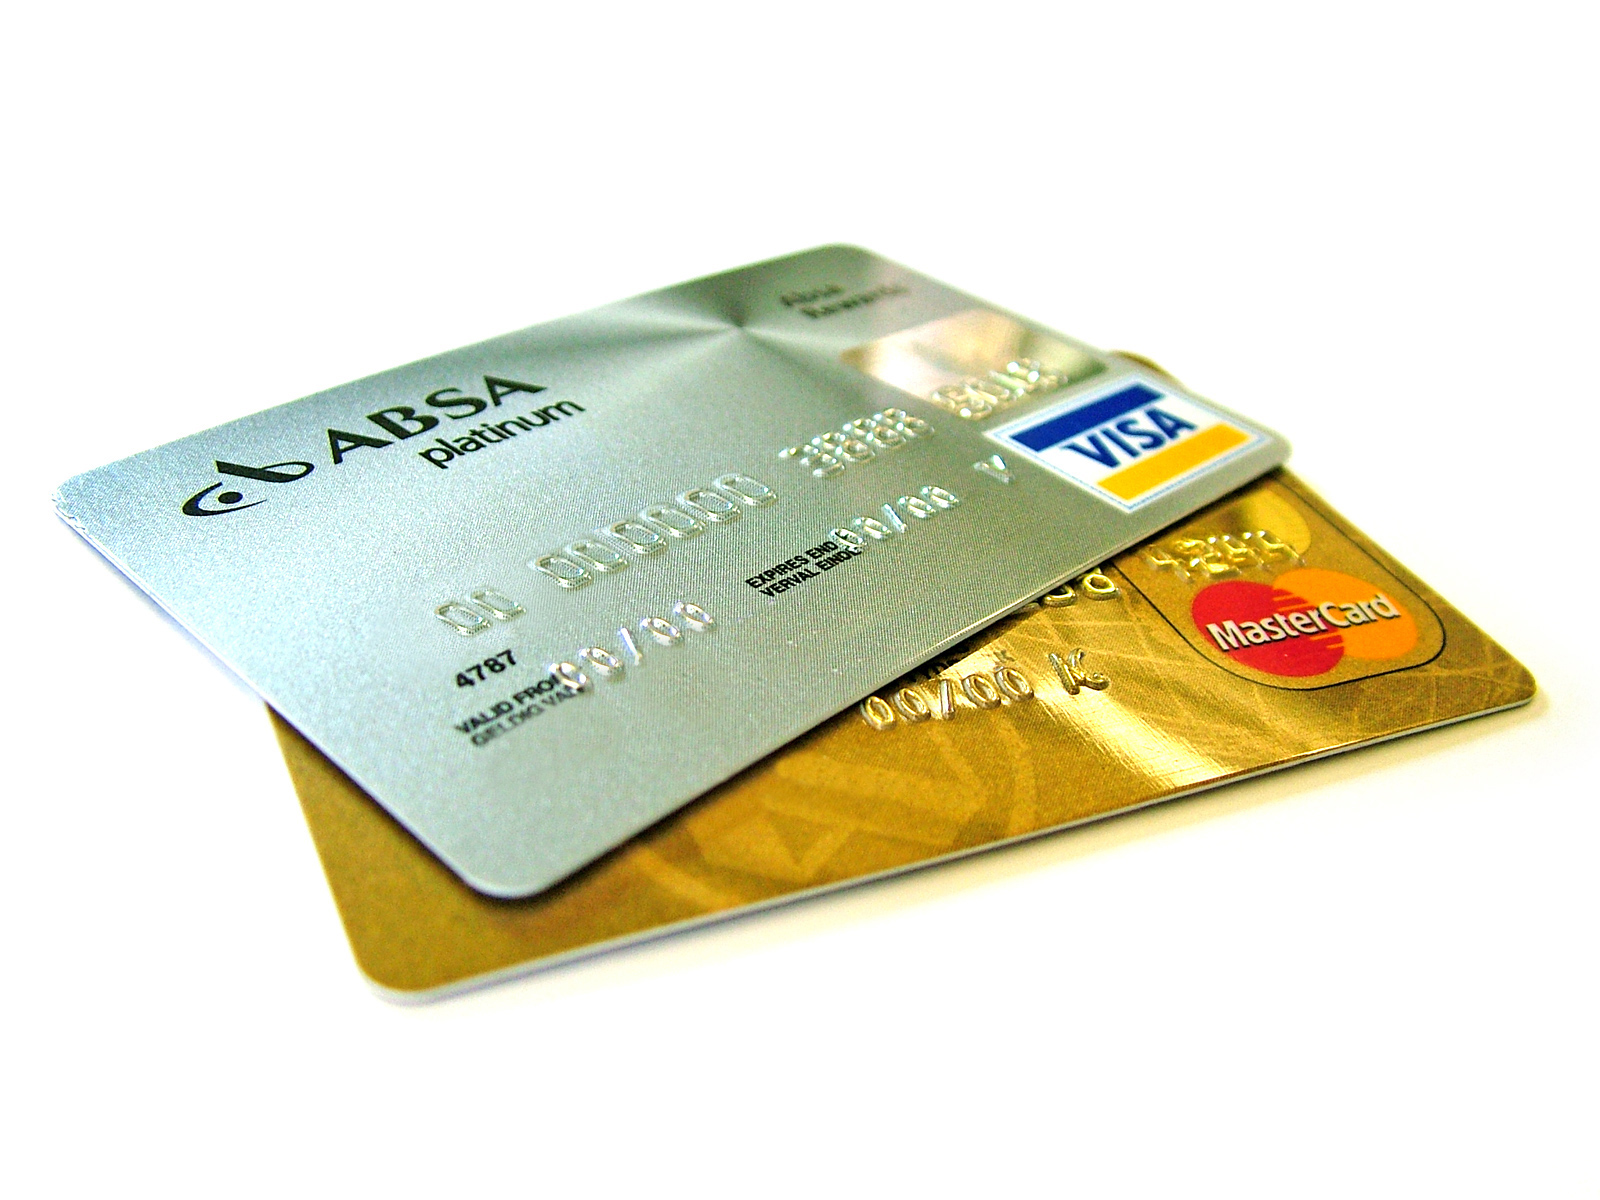 What is Credit card